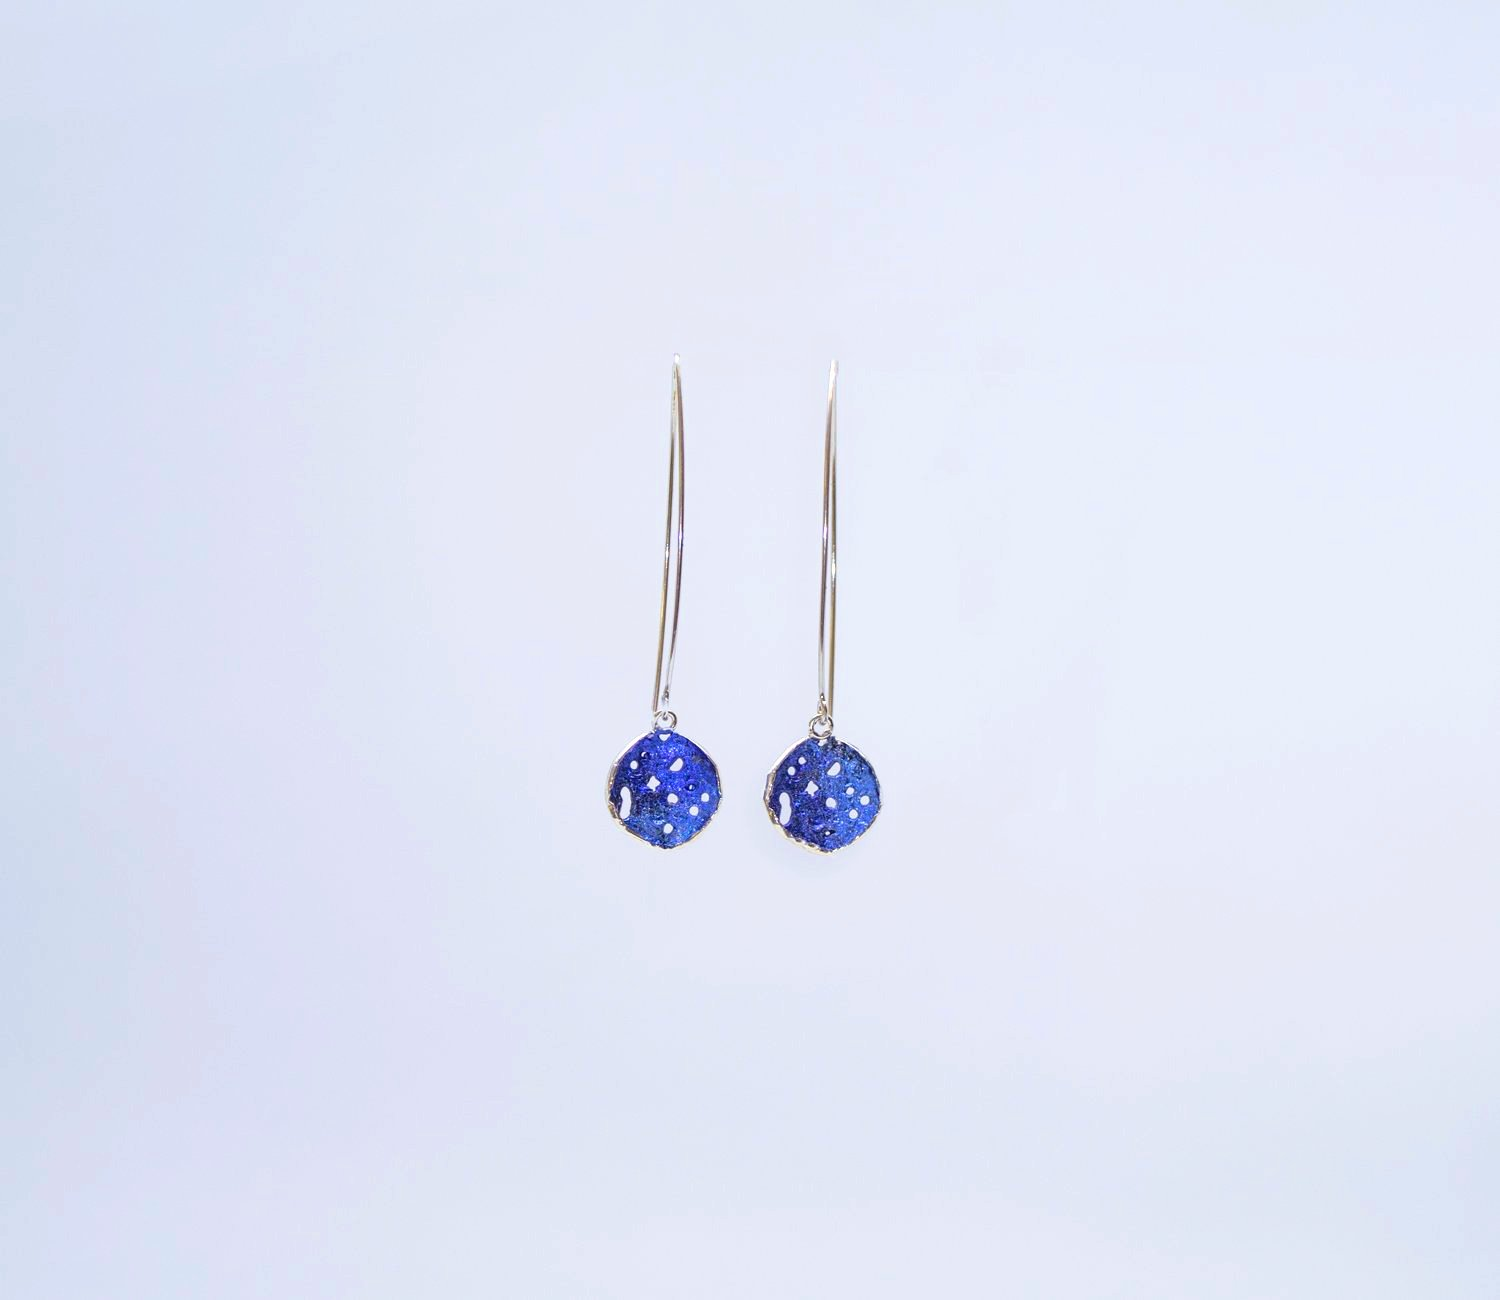 Blue drop earrings 2